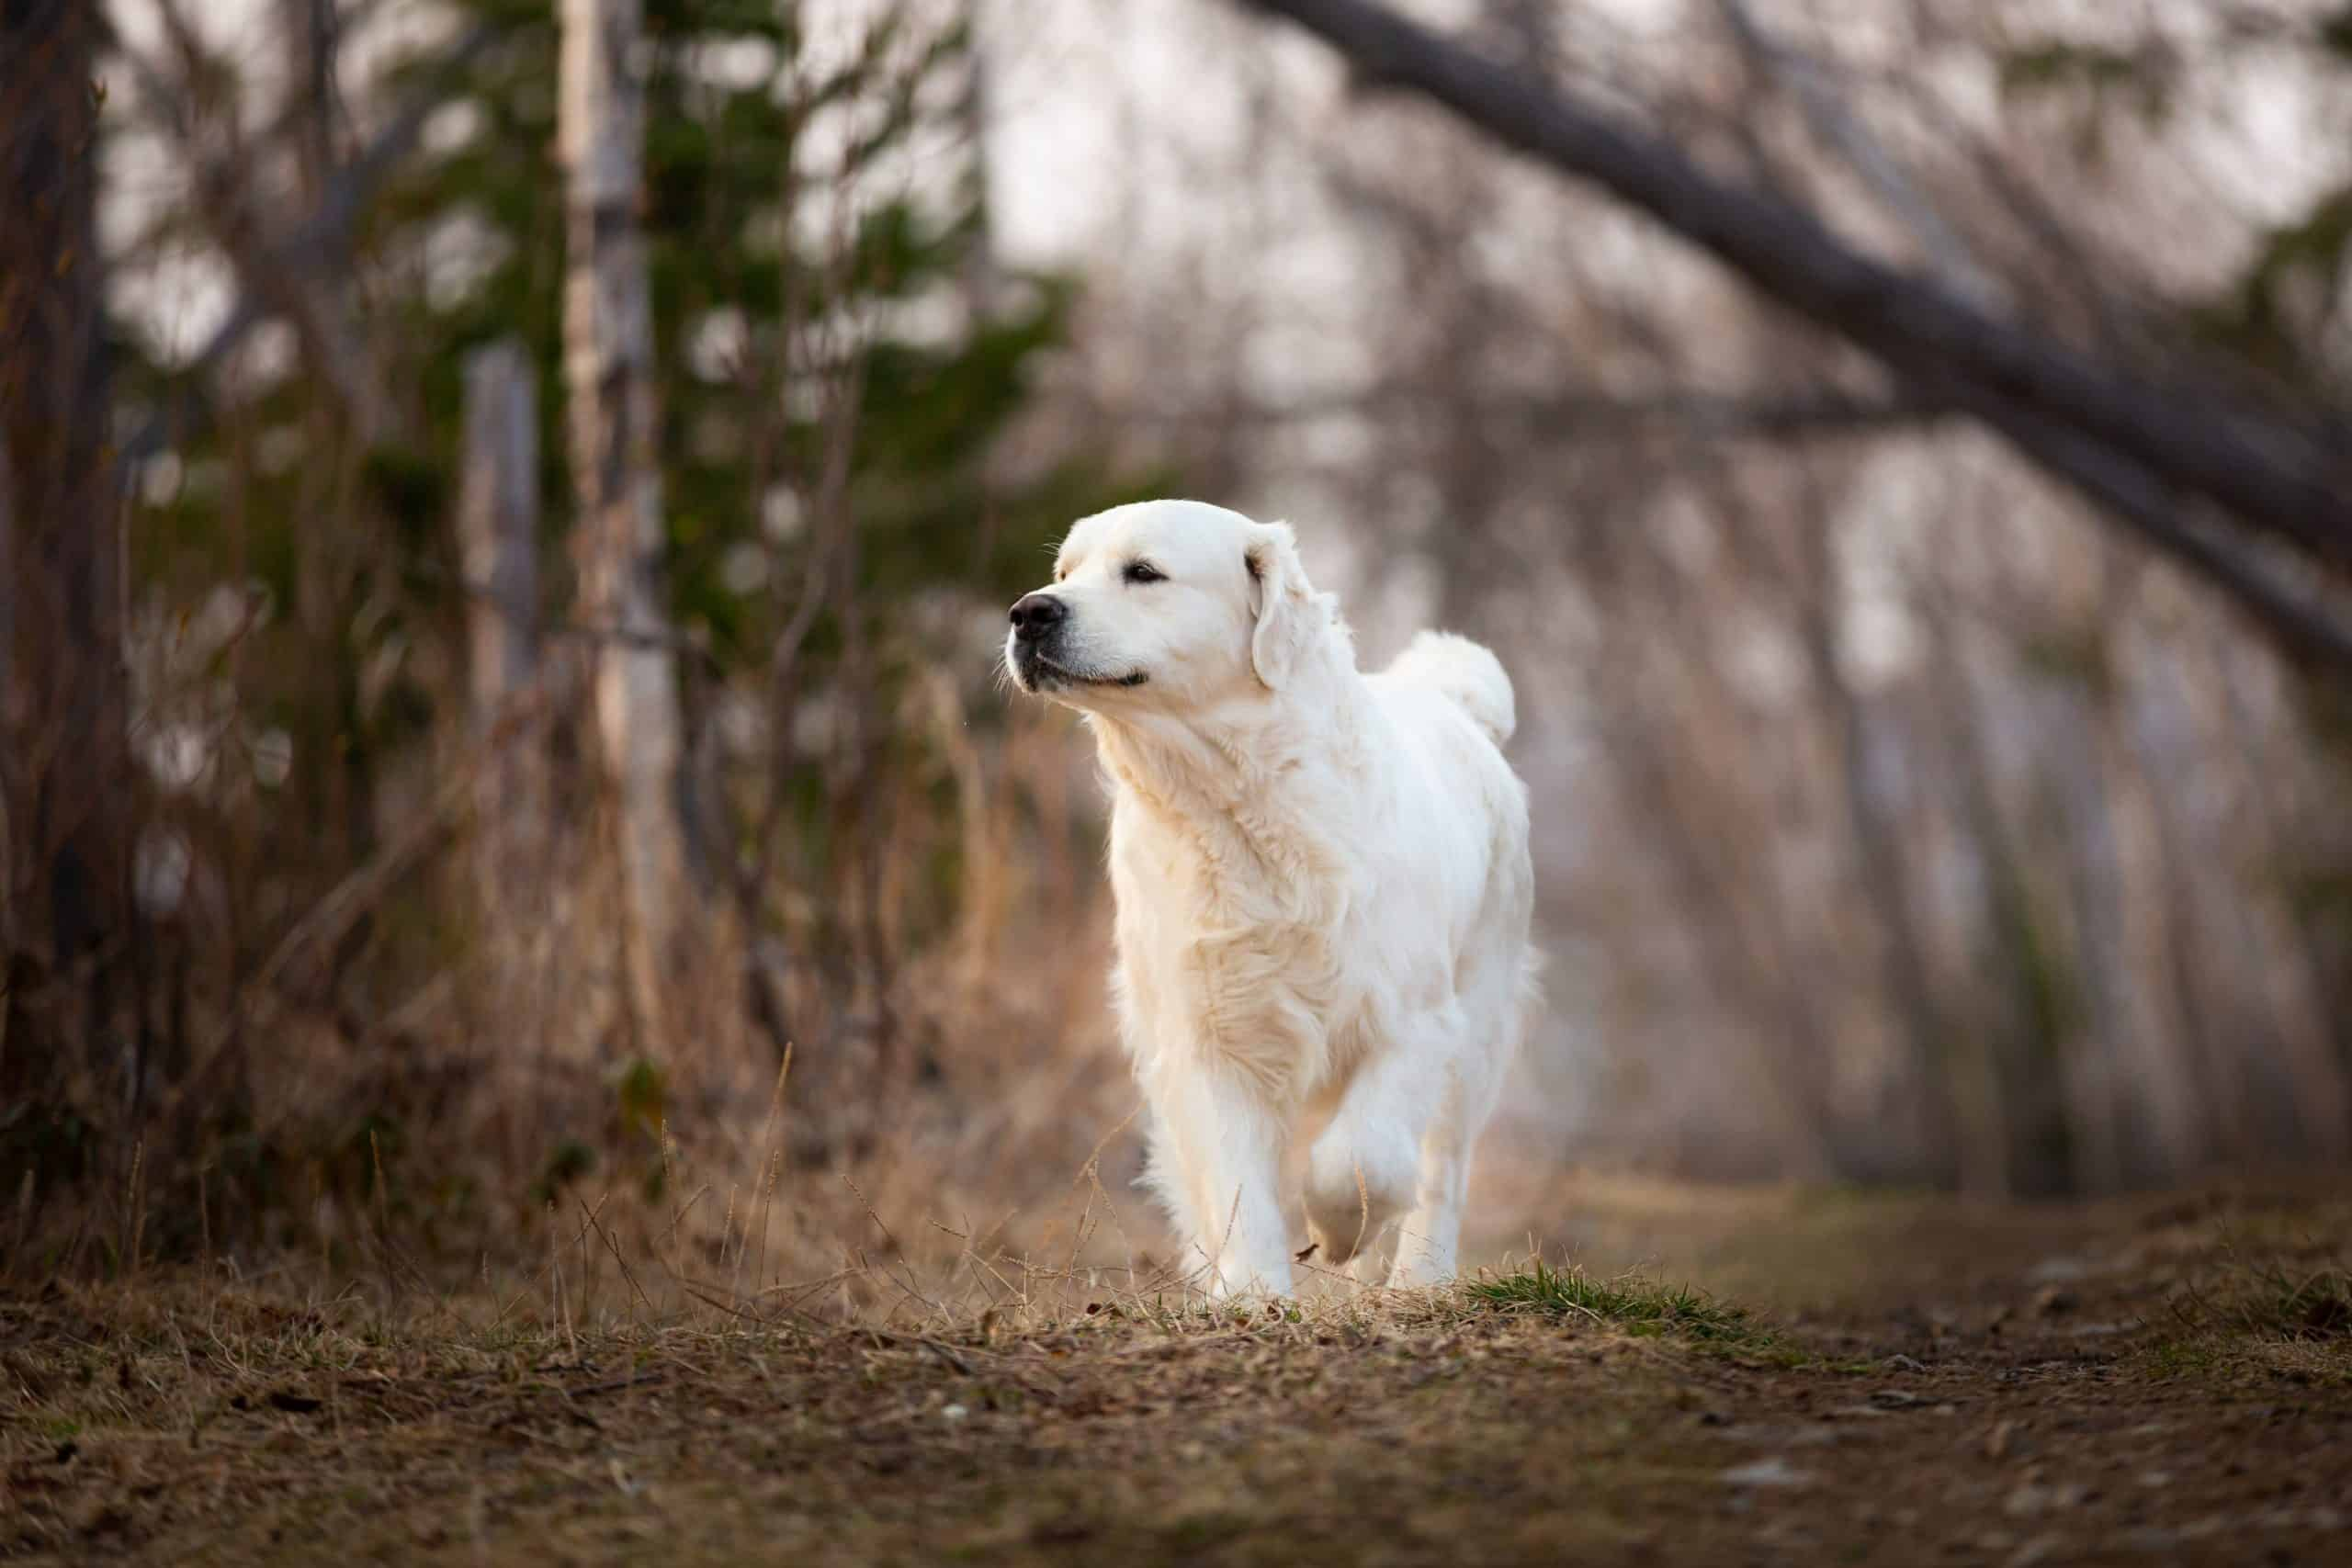 Cute and happy dog breed golden retriever running in forest and has fun at sunset; how do you pick your name for your puppy?